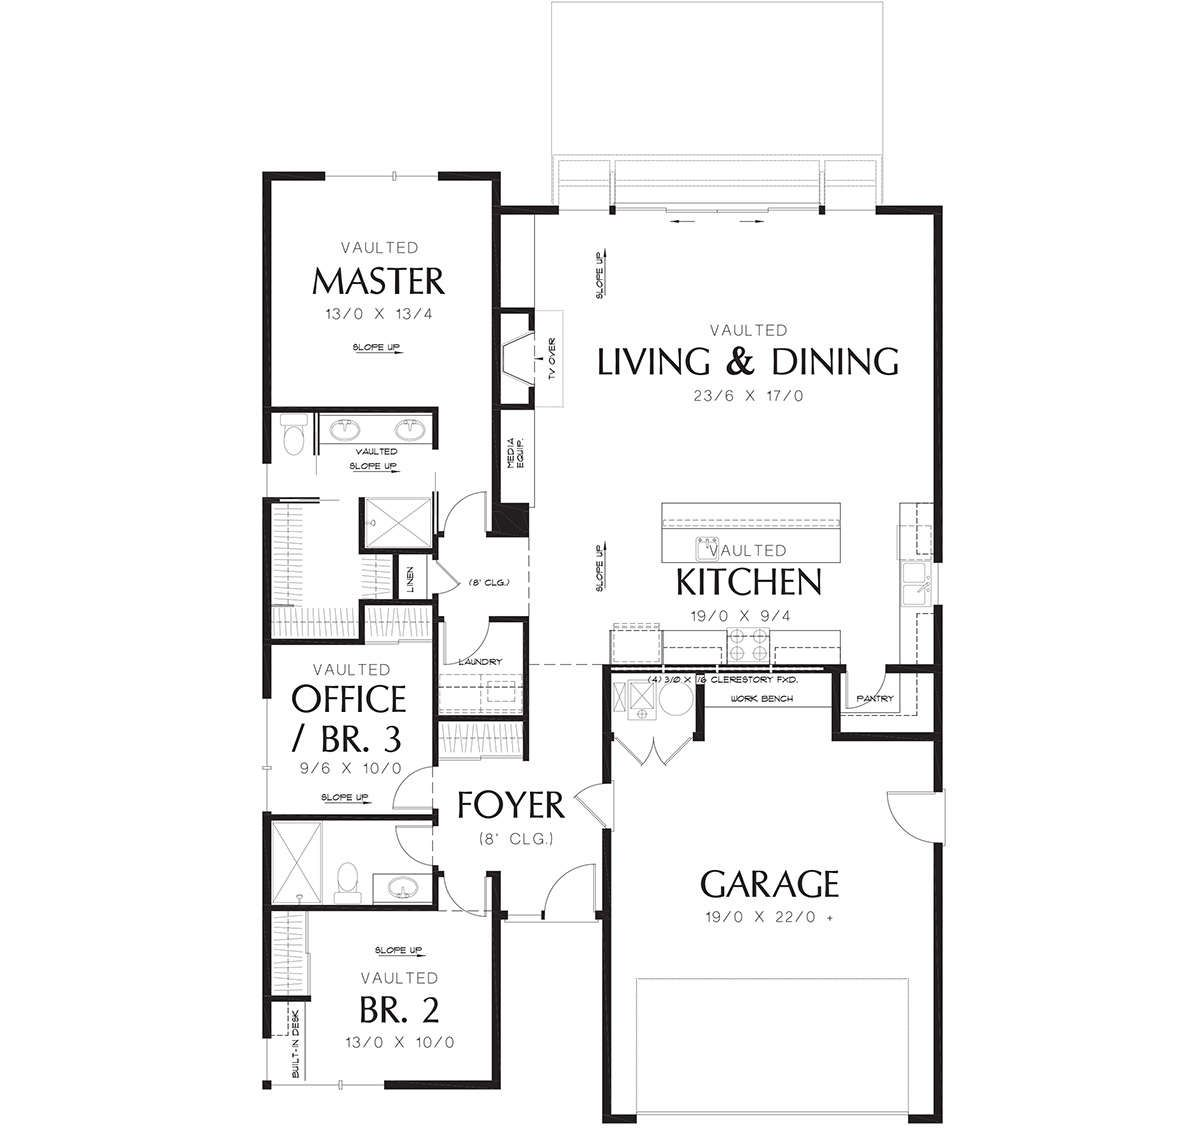 House Plan 2559 00676 Contemporary Plan 1 613 Square Feet 3 Bedrooms 2 Bathrooms Energy Efficient House Plans House Plans How To Plan